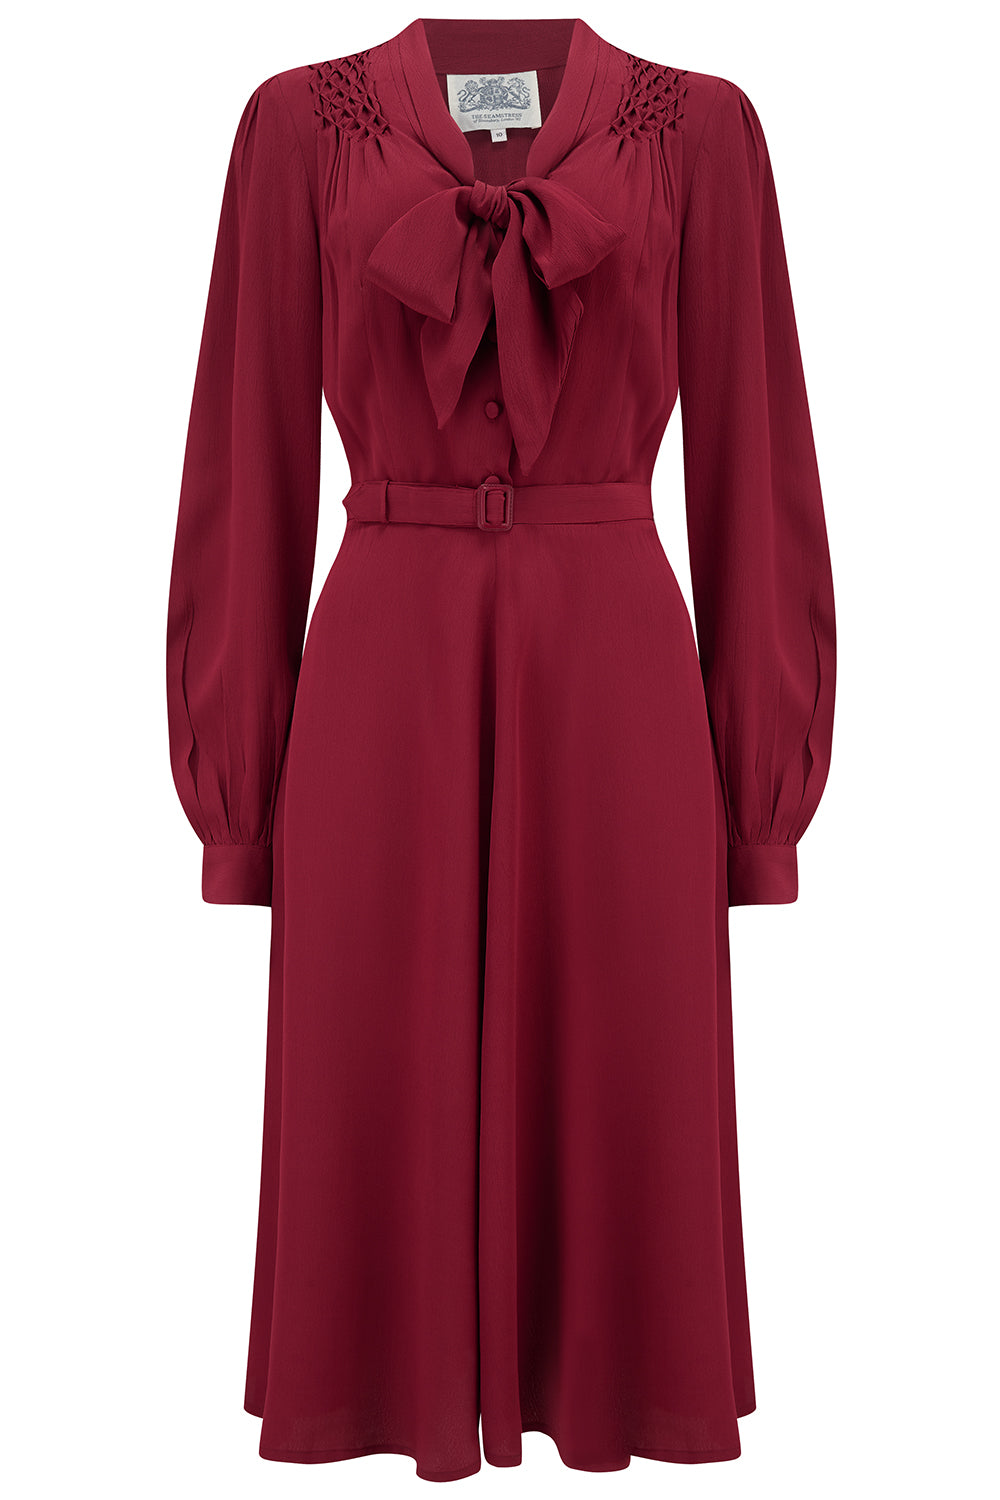 1940s Dress Styles Eva Dress in Solid Wine  Classic 1940s Style Long Sleeve Dress with Tie Neck £89.00 AT vintagedancer.com